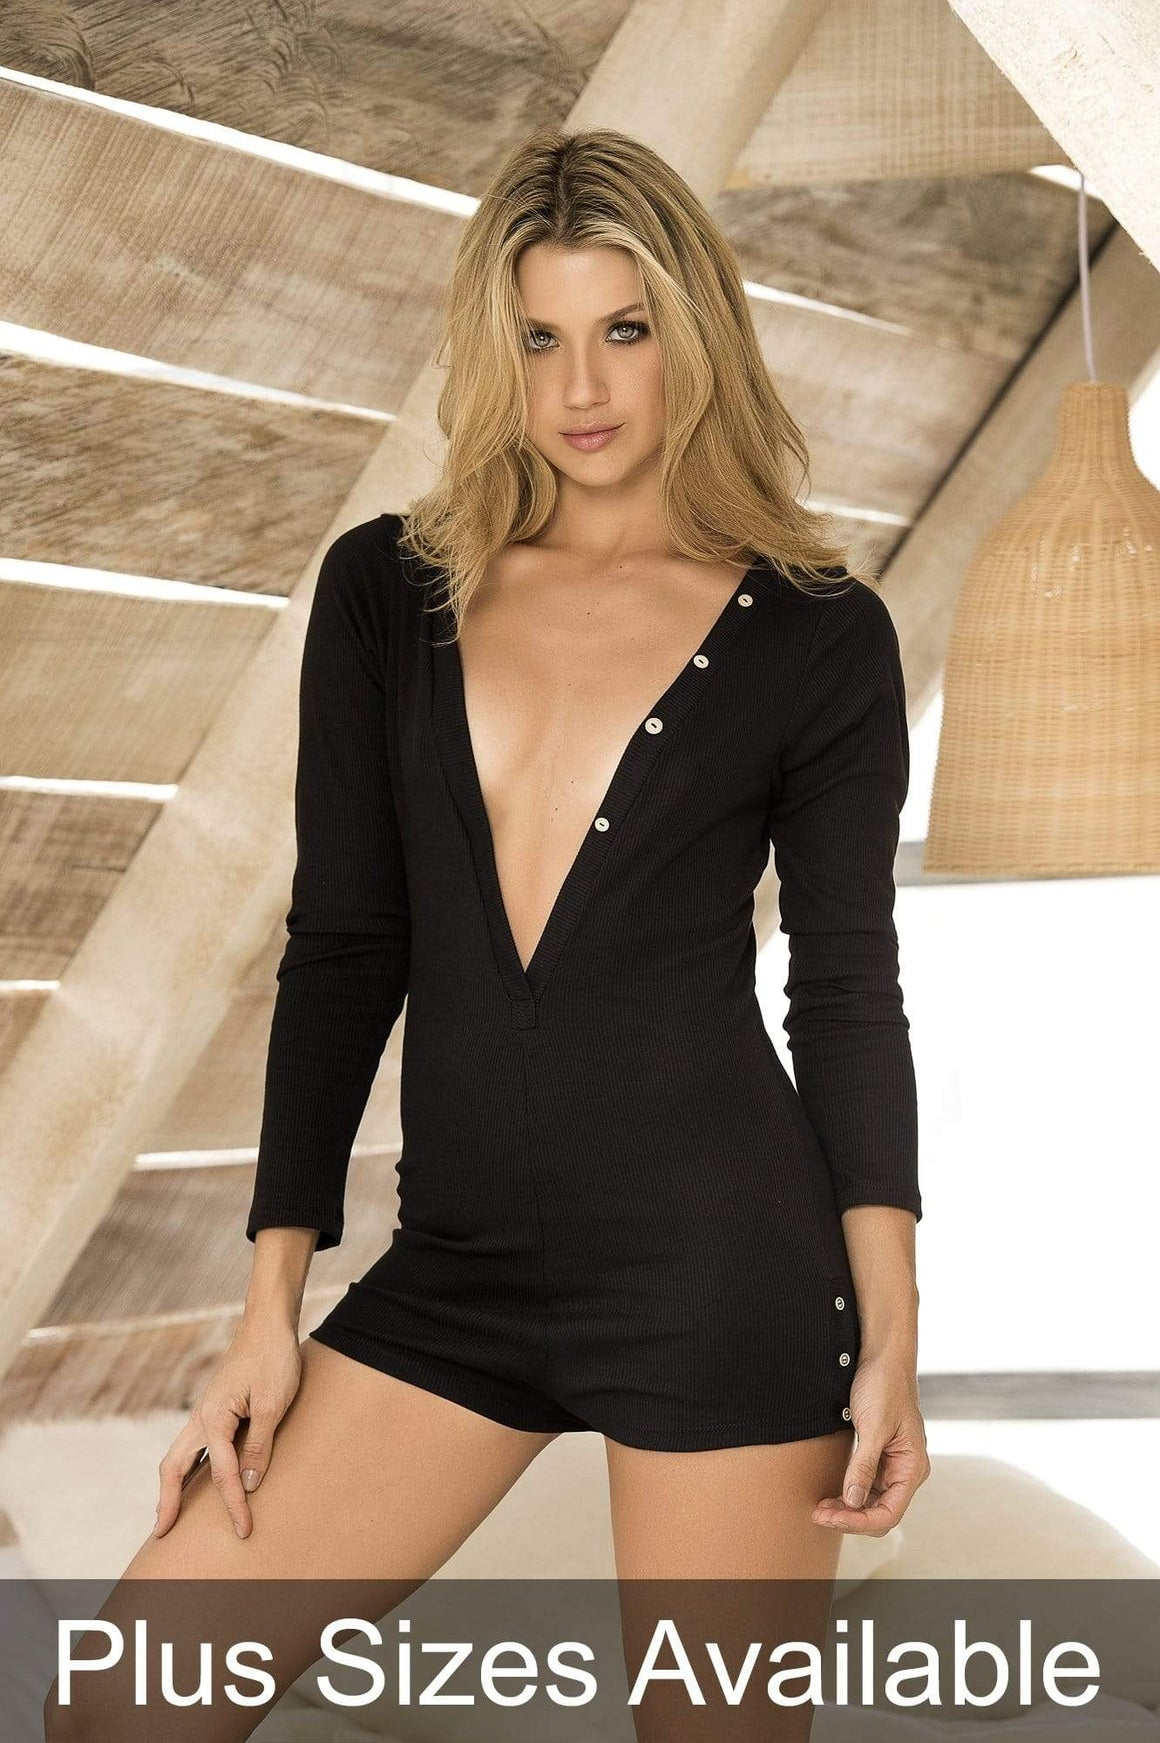 mapale Small / Black Black Plunge Ribbed Long Sleeve Sleep Romper SHC-7223-S-MA Black Plunge Rib Long Sleeve Sleep Romper Plunge Lingerie | SHOP NOW Apparel & Accessories > Clothing > Sleepwear & Loungewear > Robes